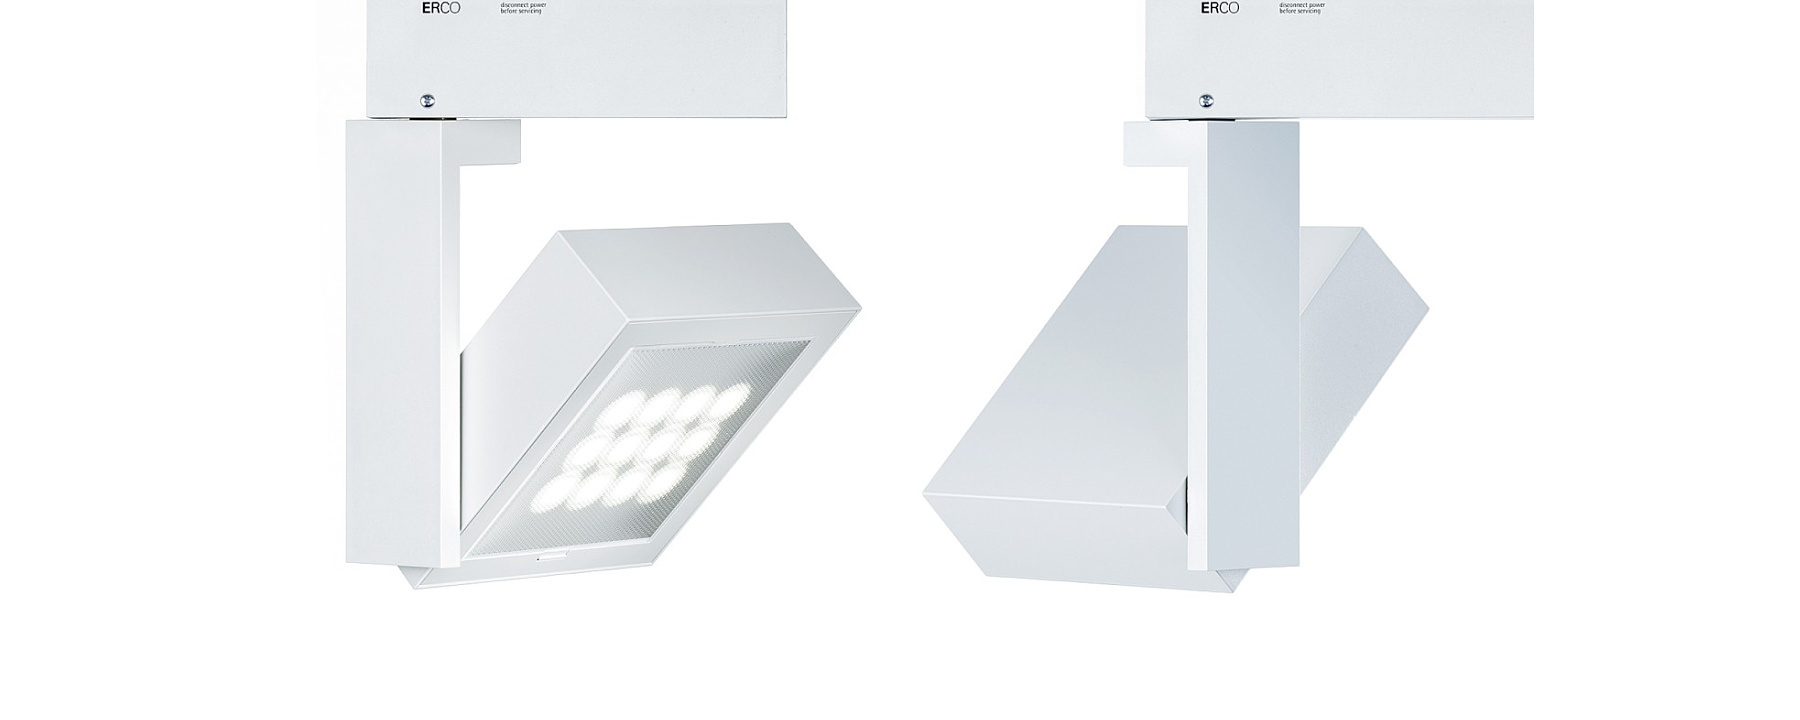 Cantax - Luminaires for track